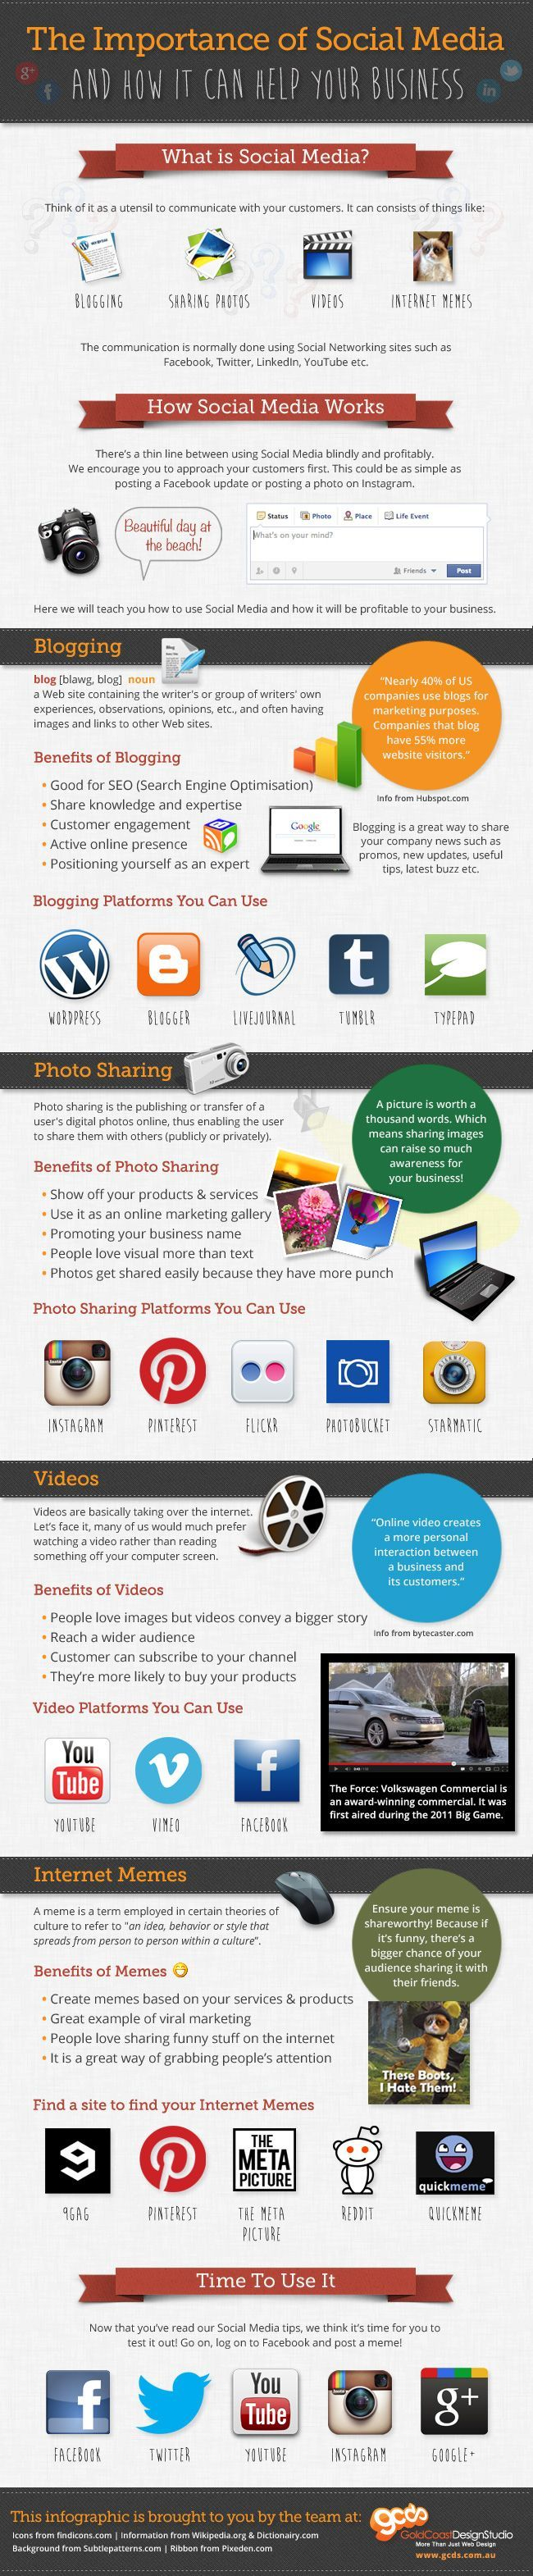 The Importance of Social Media and How it can help your business #socialmedia #Facebook #Twitter #Blogging #Instagram #Pinterest #Infographic